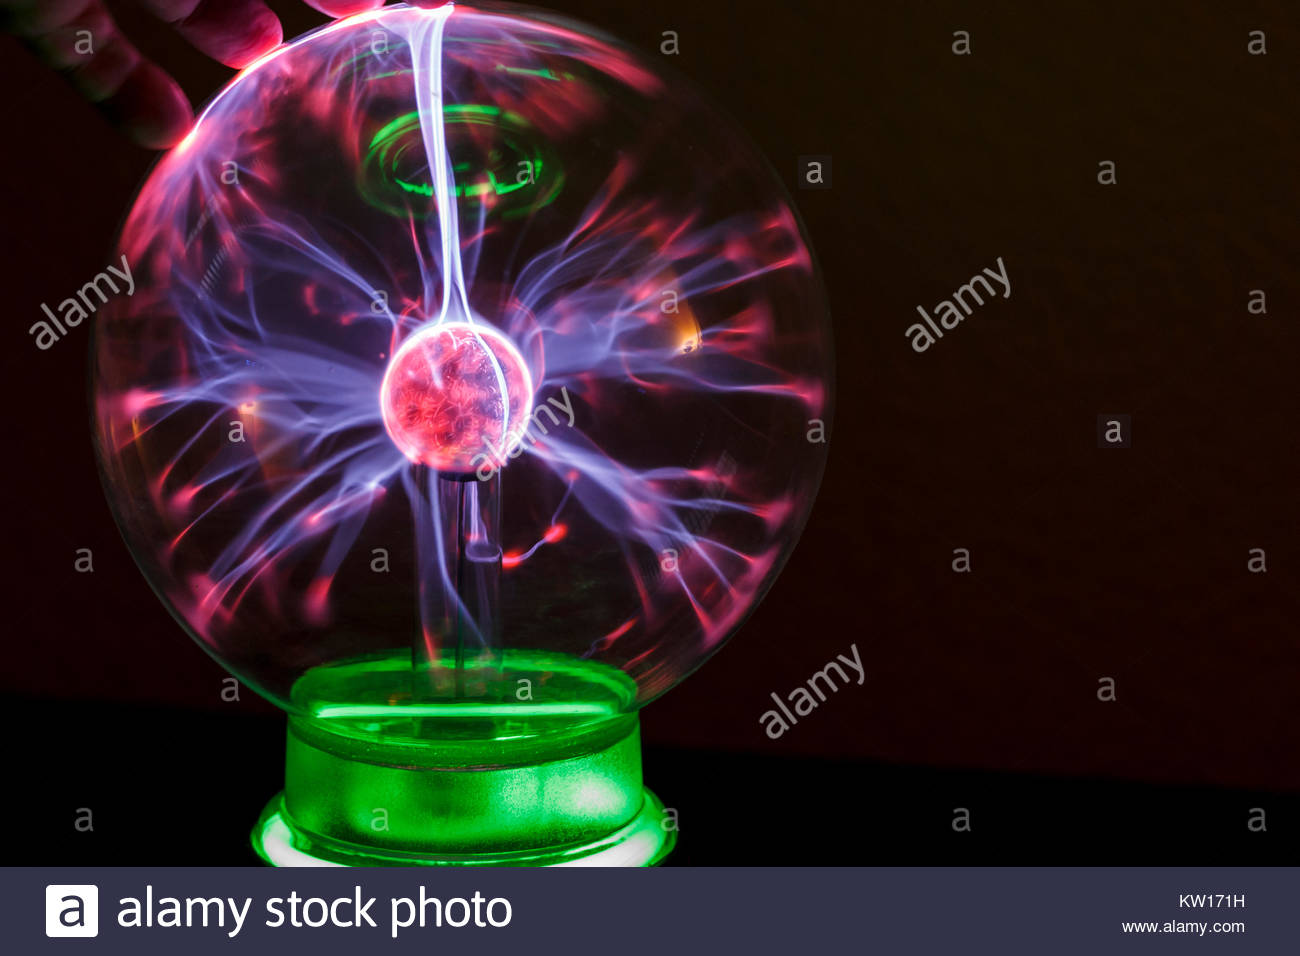 Corona discharge in a gaseous medium with the example of